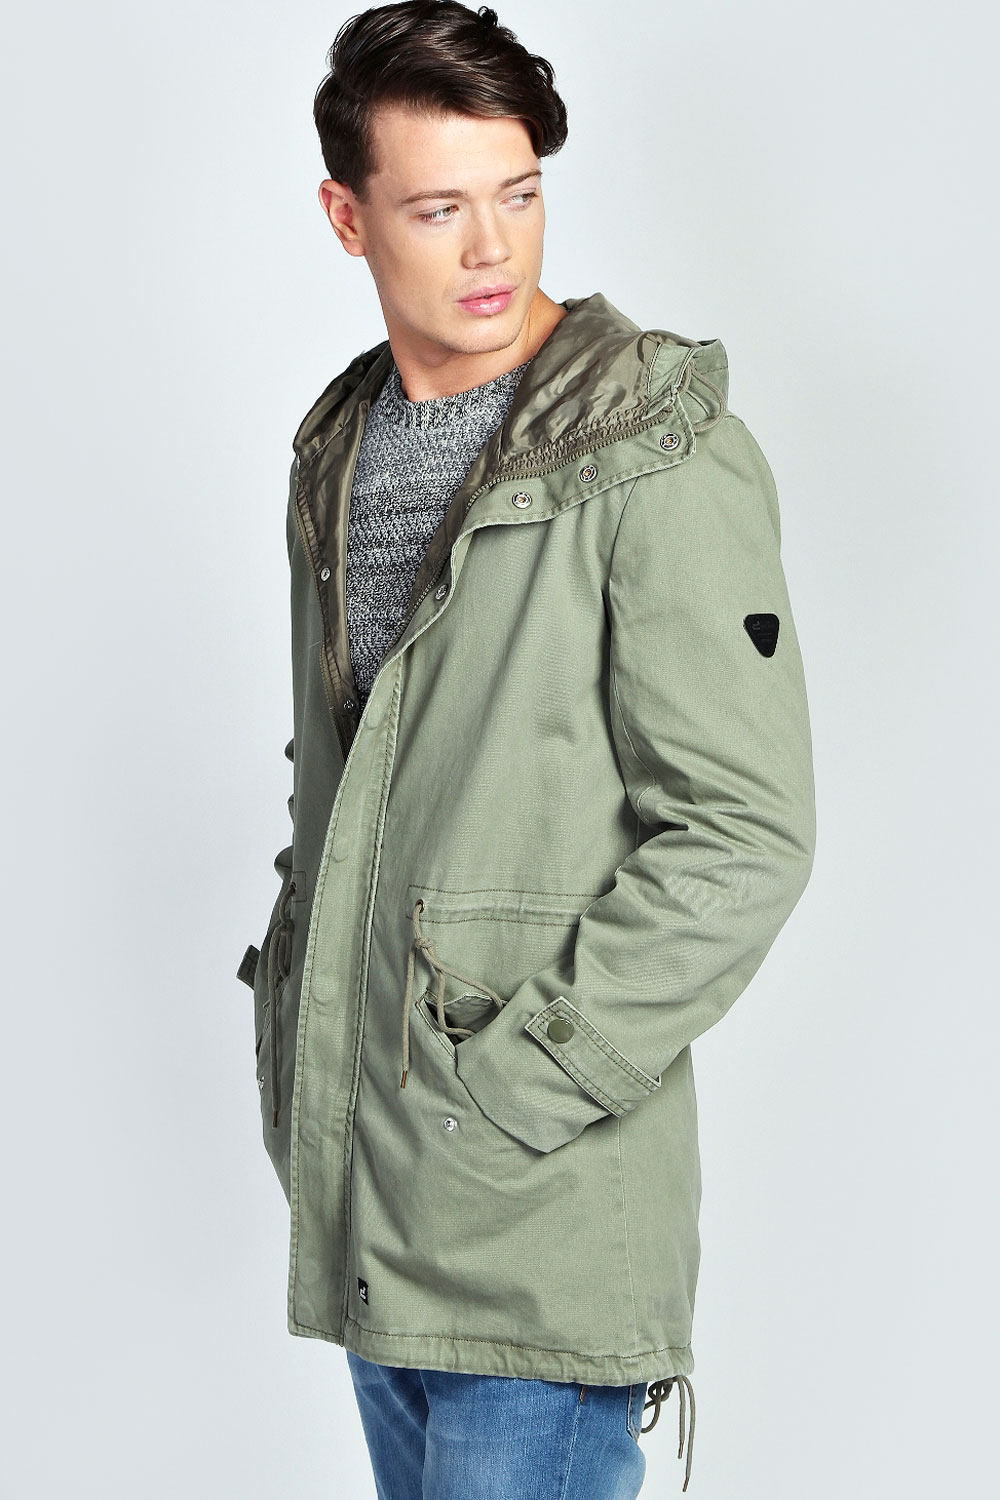 Find great deals on eBay for Mens Khaki Jacket in Men's Coats And Jackets. Shop with confidence. Find great deals on eBay for Mens Khaki Jacket in Men's Coats And Jackets. Shop with confidence. Skip to main content. eBay: Shop by category. Shop by .